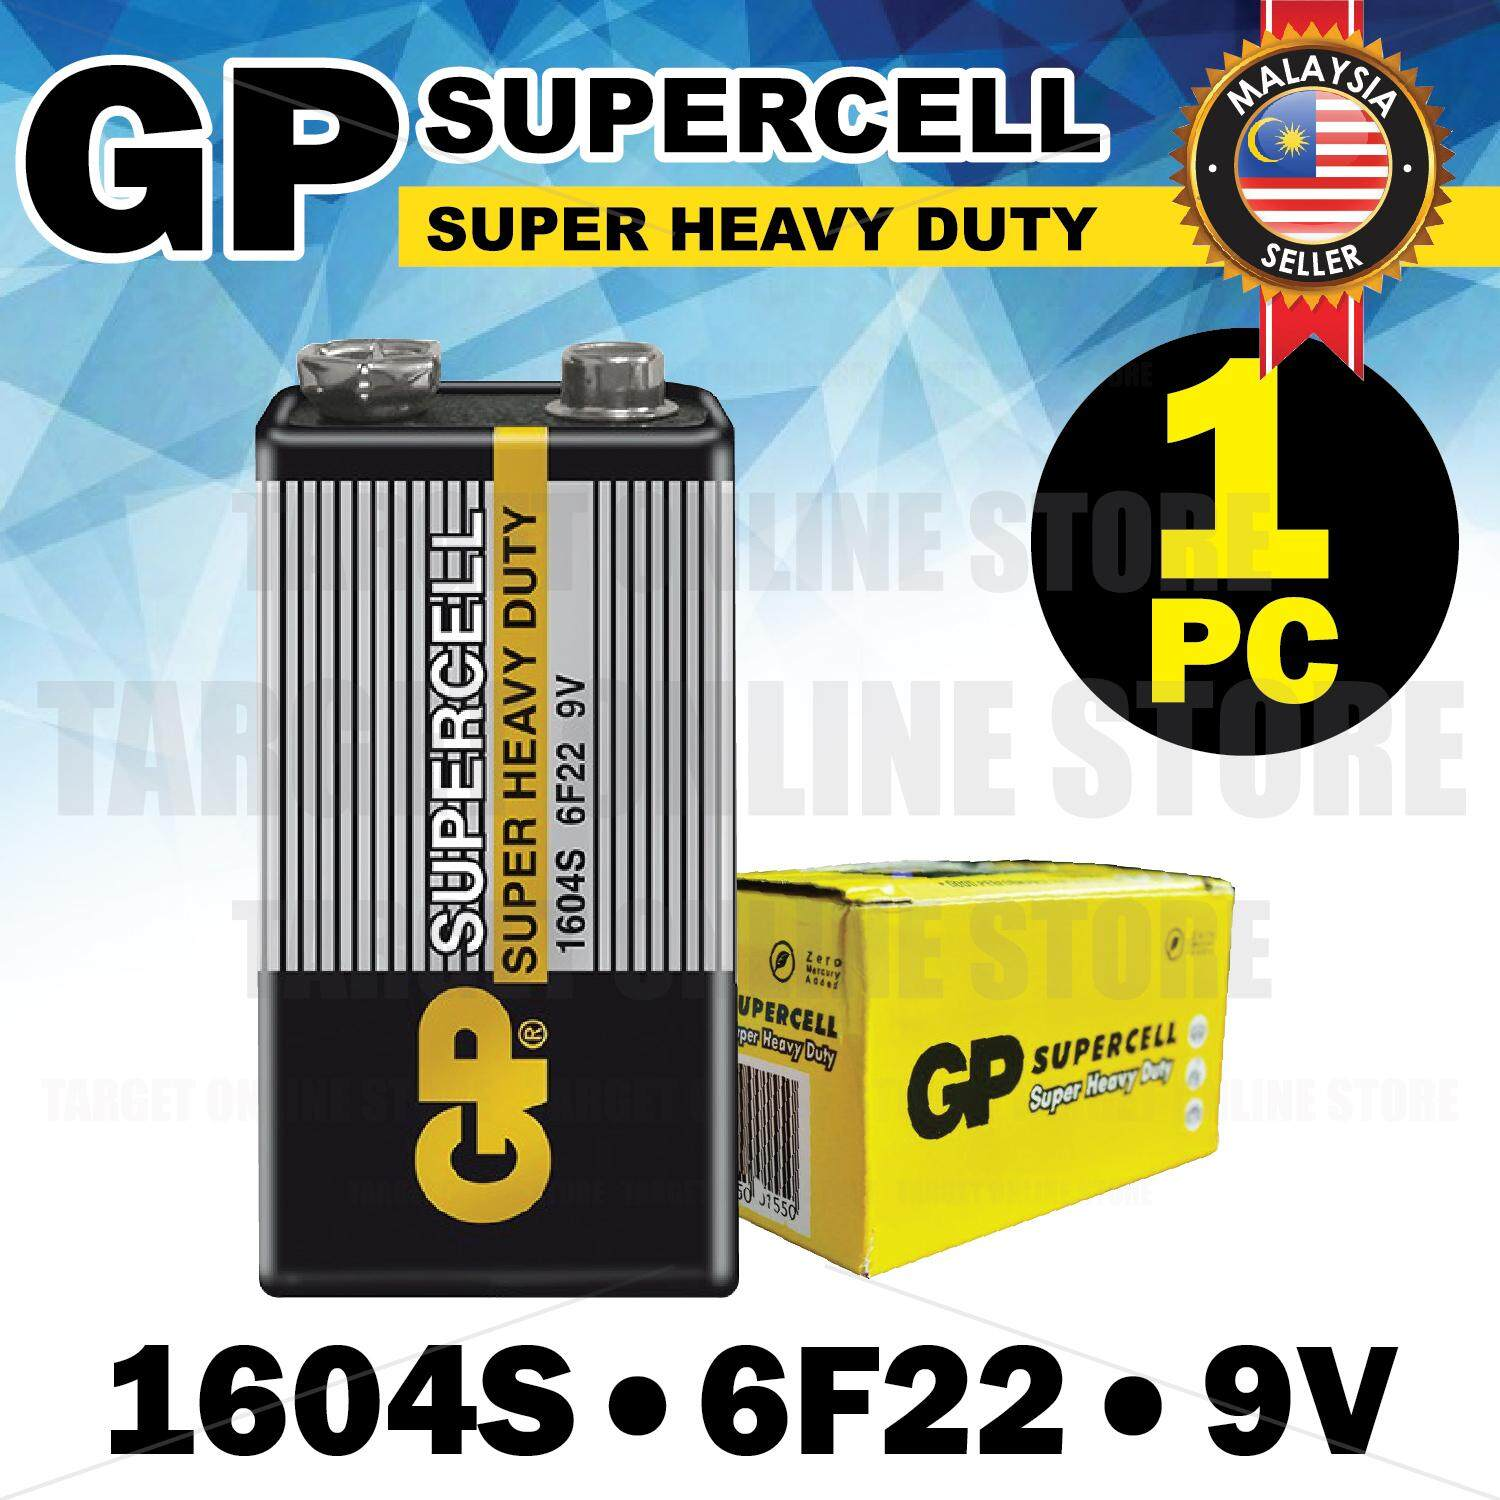 GP SUPERCELL Super Heavy Duty 1604S 6F22 9V Battery Batteries 1 PC